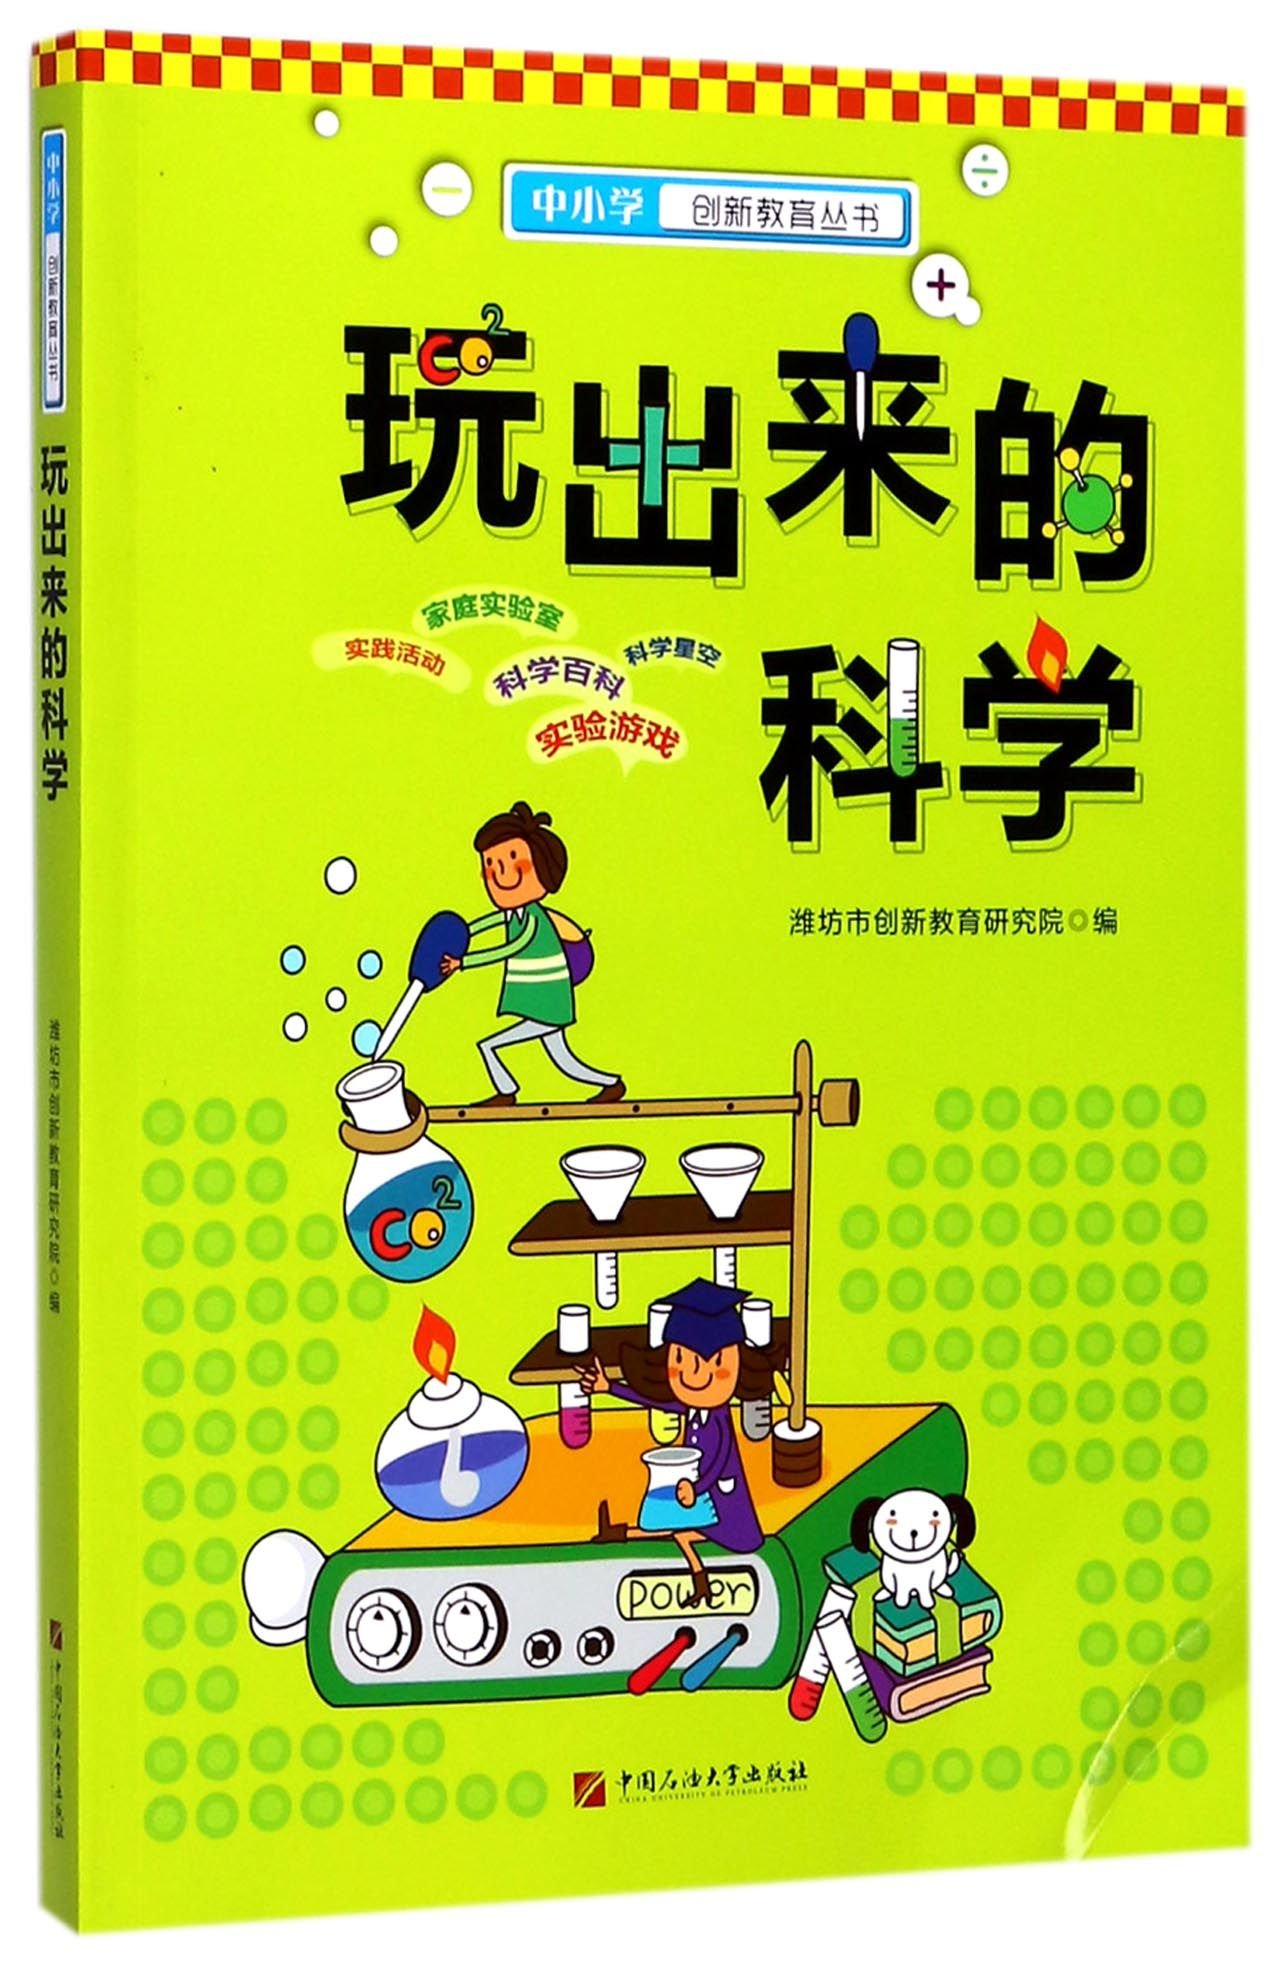 The Science in Games (Chinese Edition) pdf epub